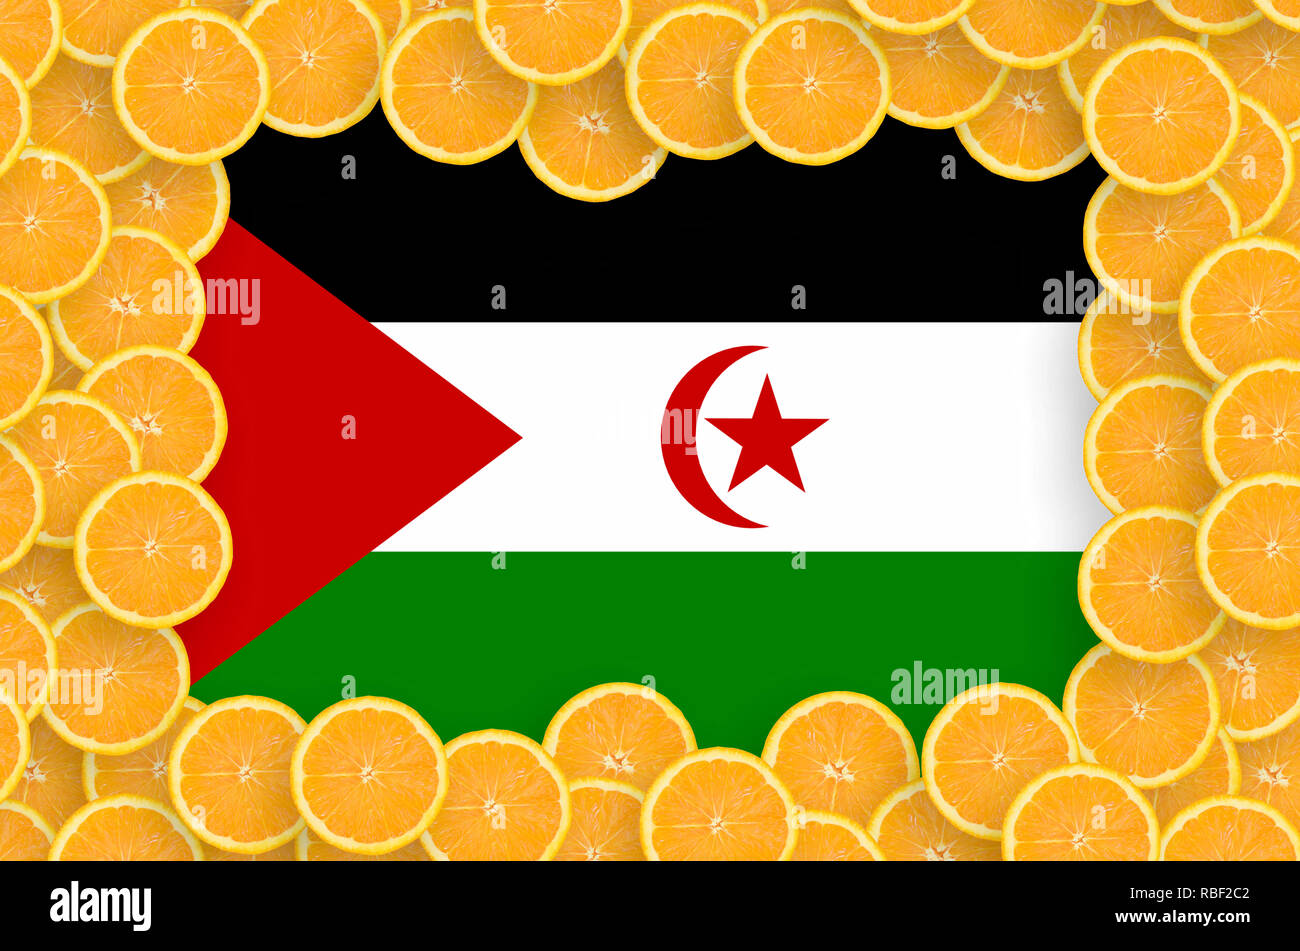 Western Sahara flag  in frame of orange citrus fruit slices. Concept of growing as well as import and export of citrus fruits - Stock Image